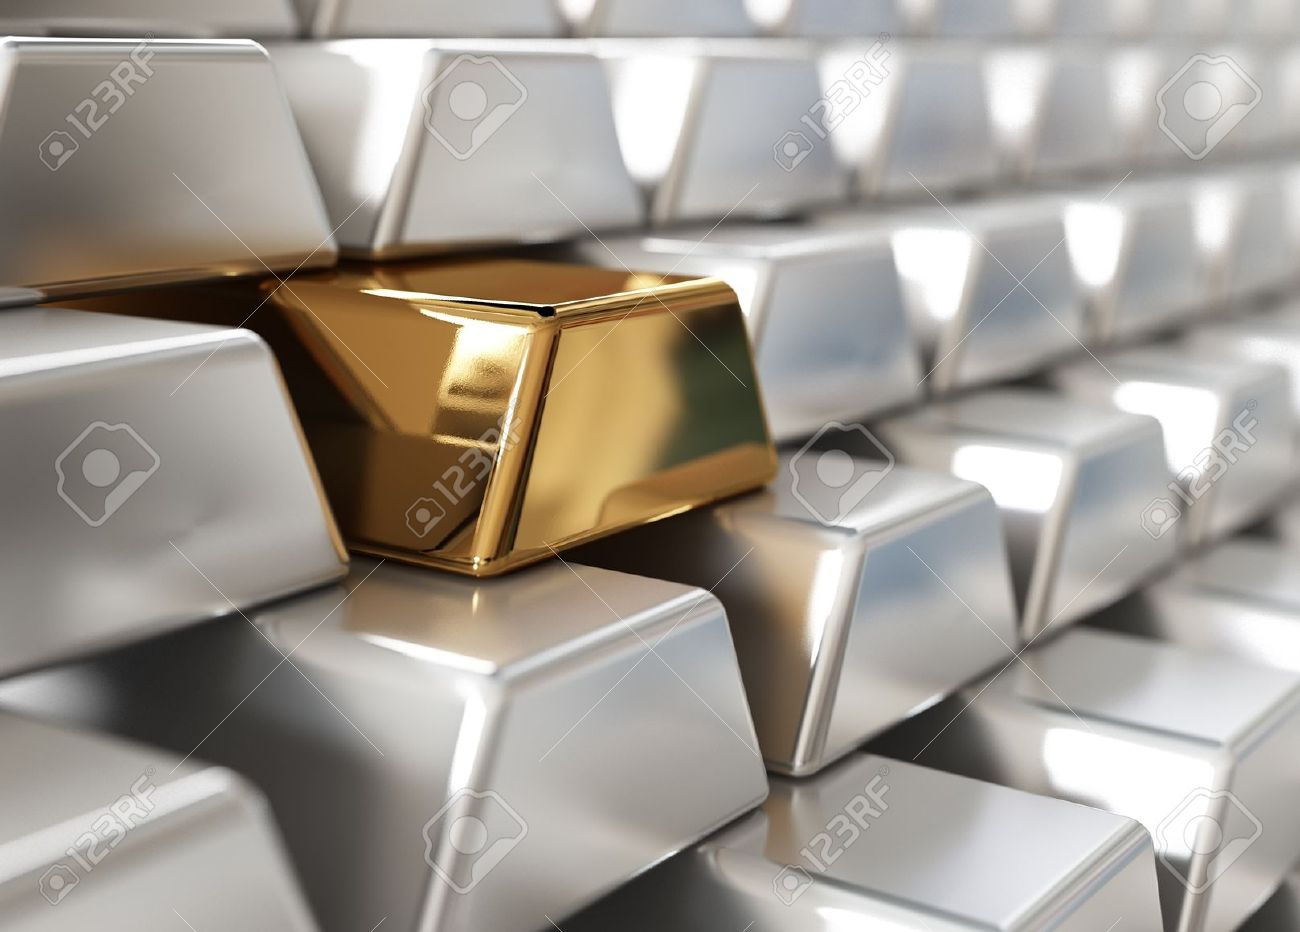 Gold: We Do Not See It Trading At $1,350